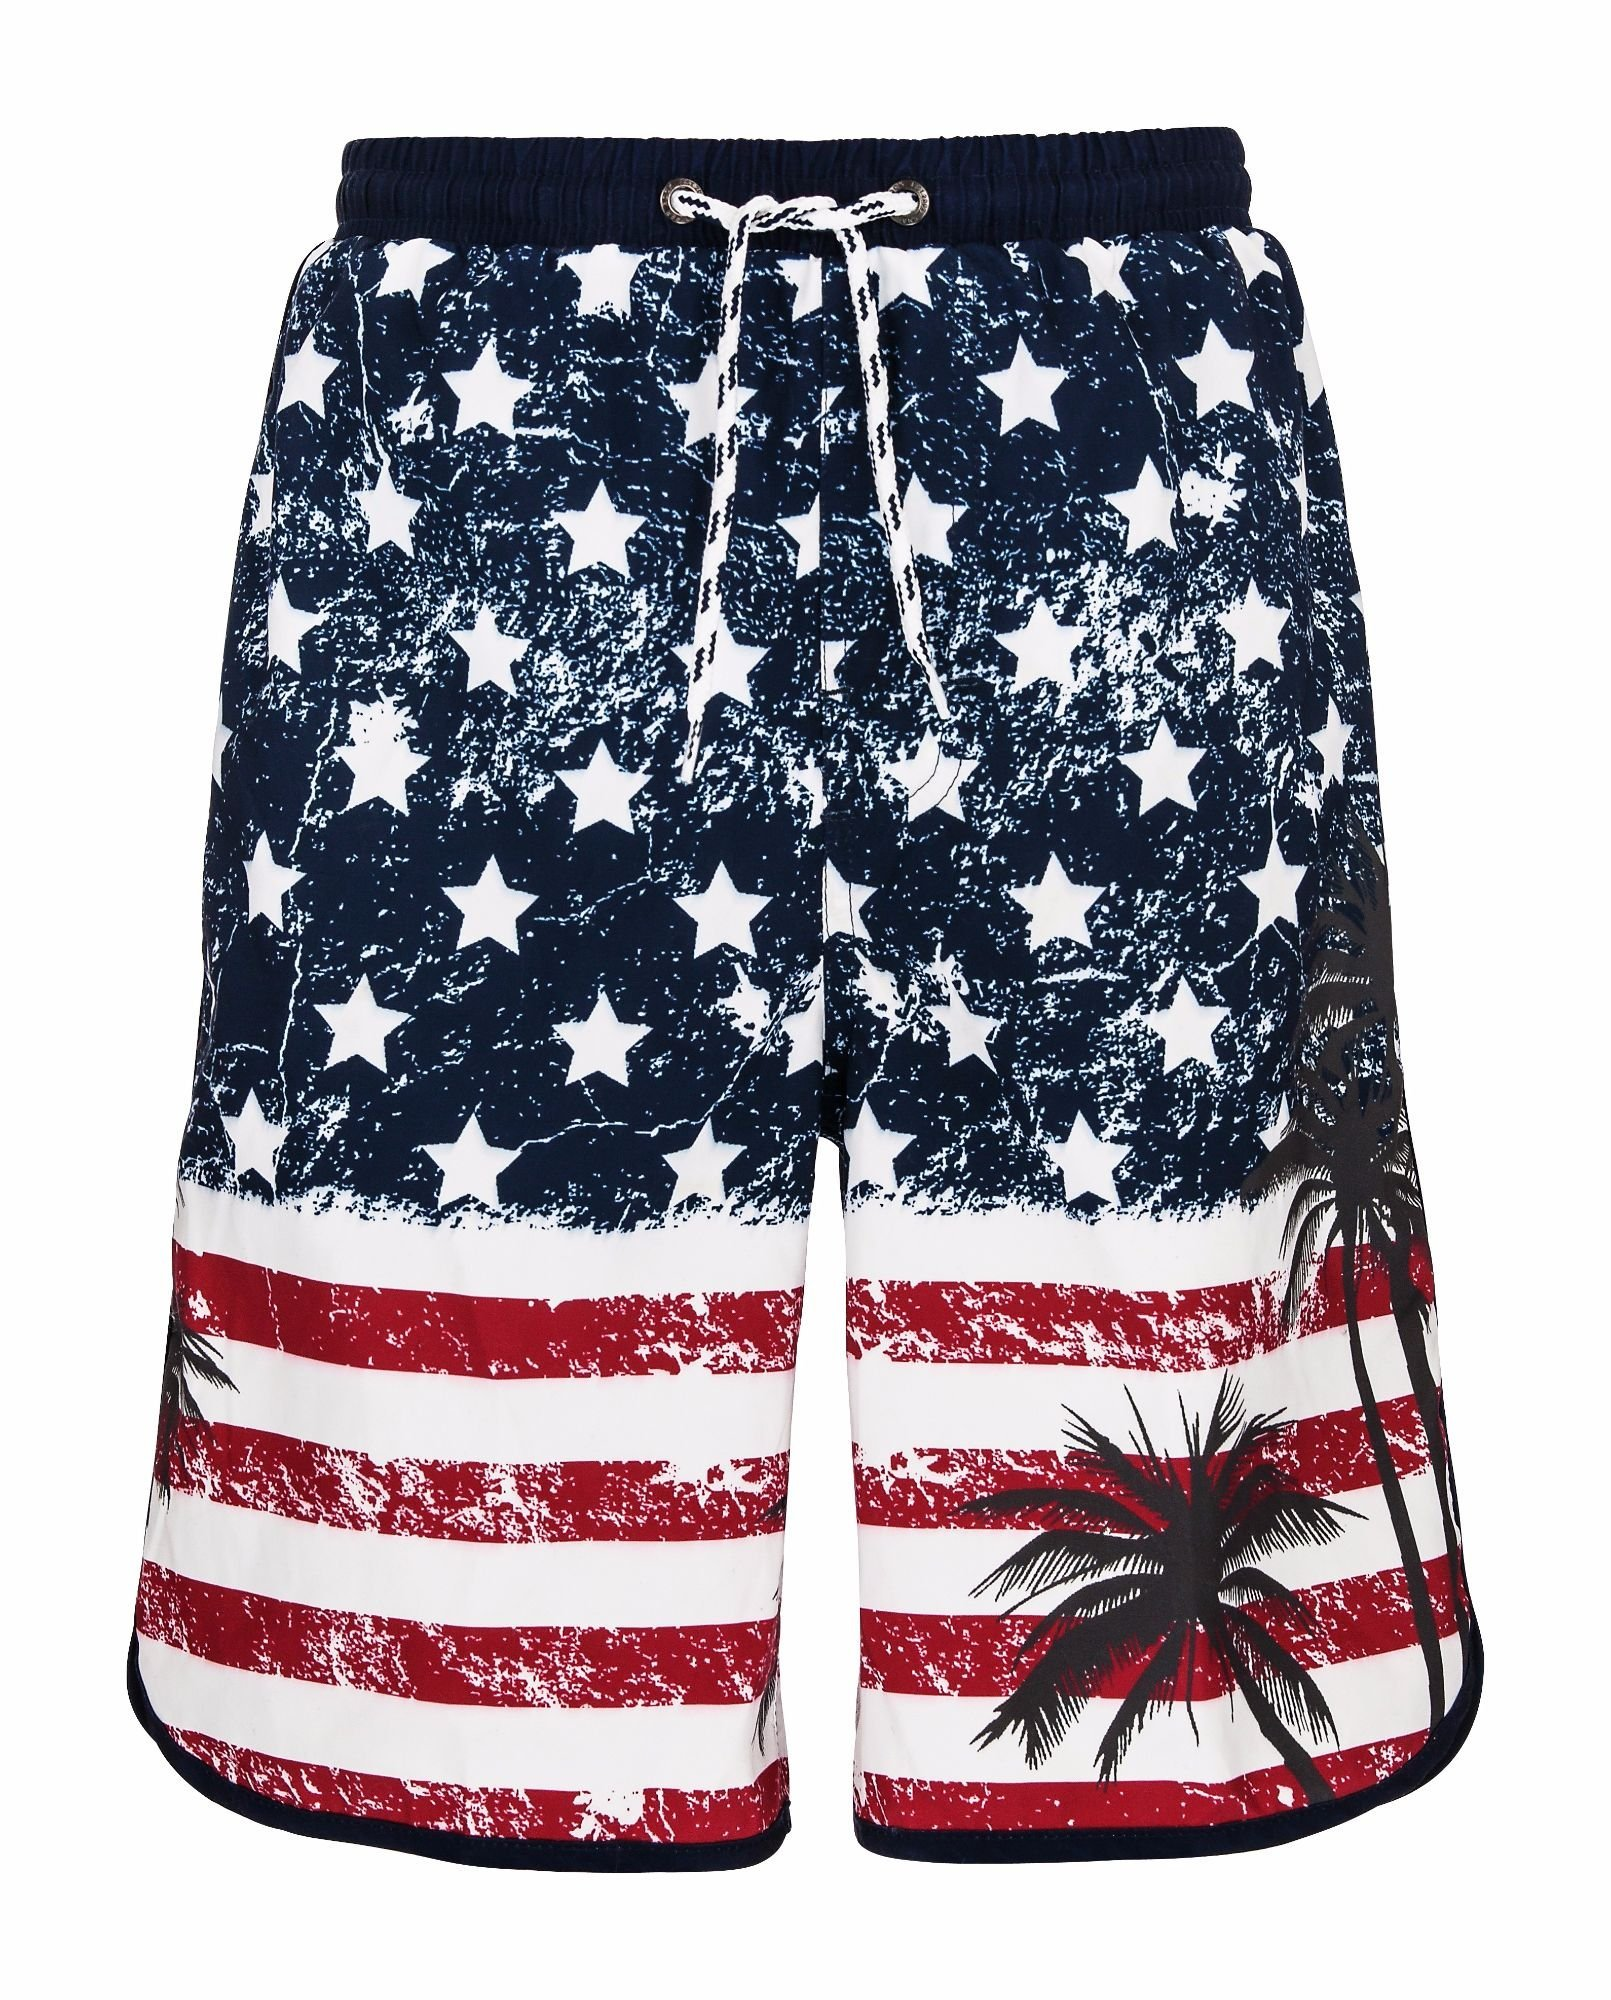 Snapper Rock Little Boys' Regular Board Shorts Swimbottoms, Retro Flag, 4